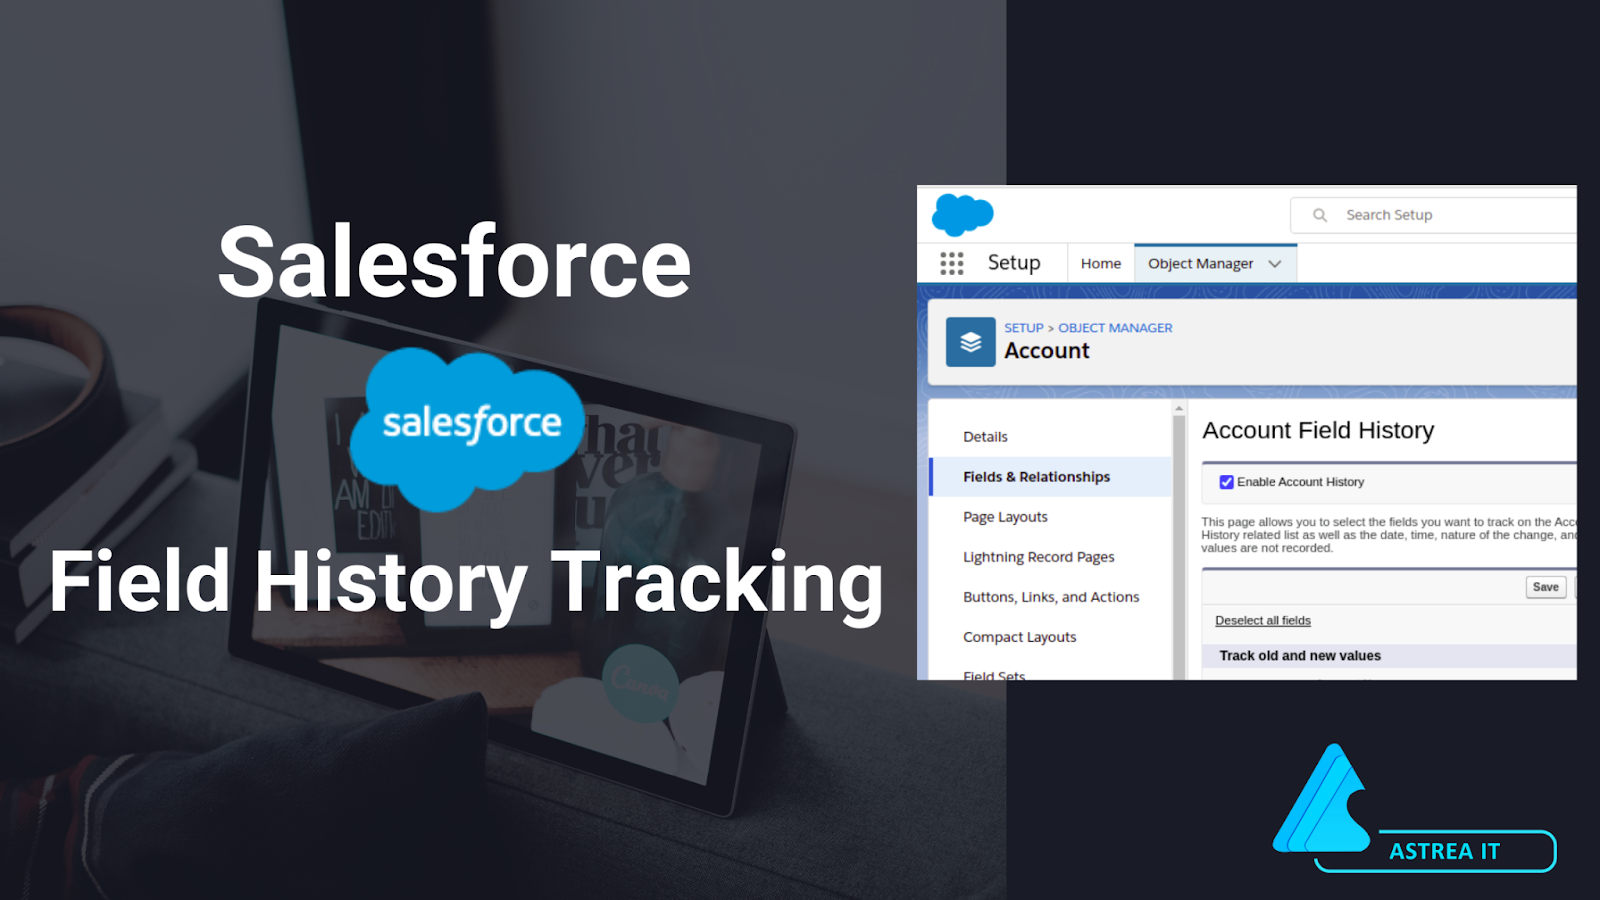 Salesforce Field History Tracking